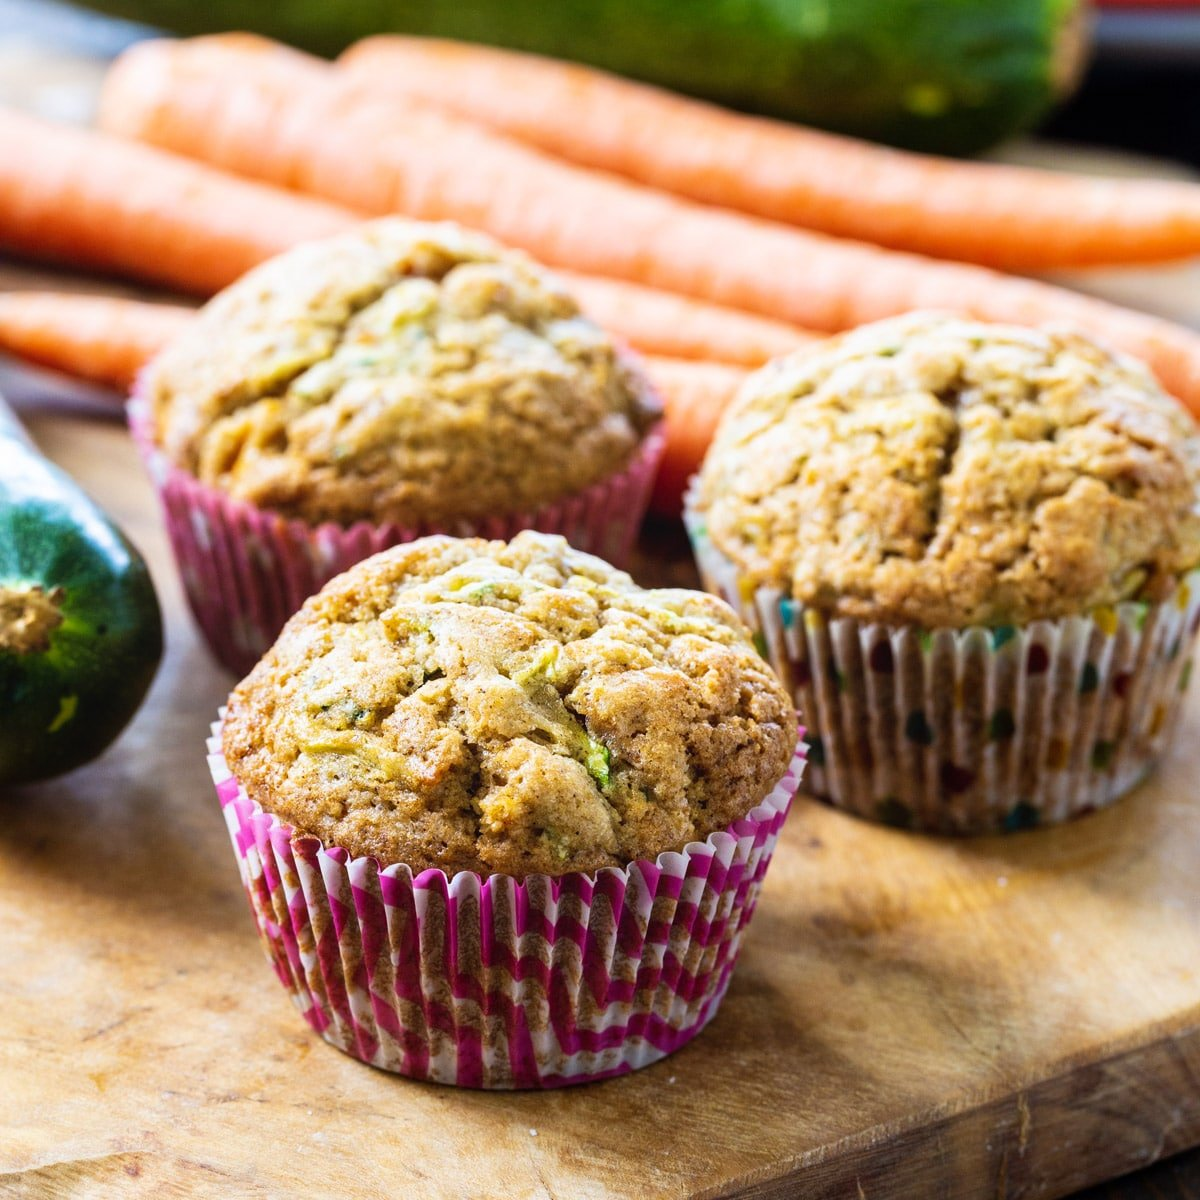 Three Carrot Zucchini Muffins on a wooden board.